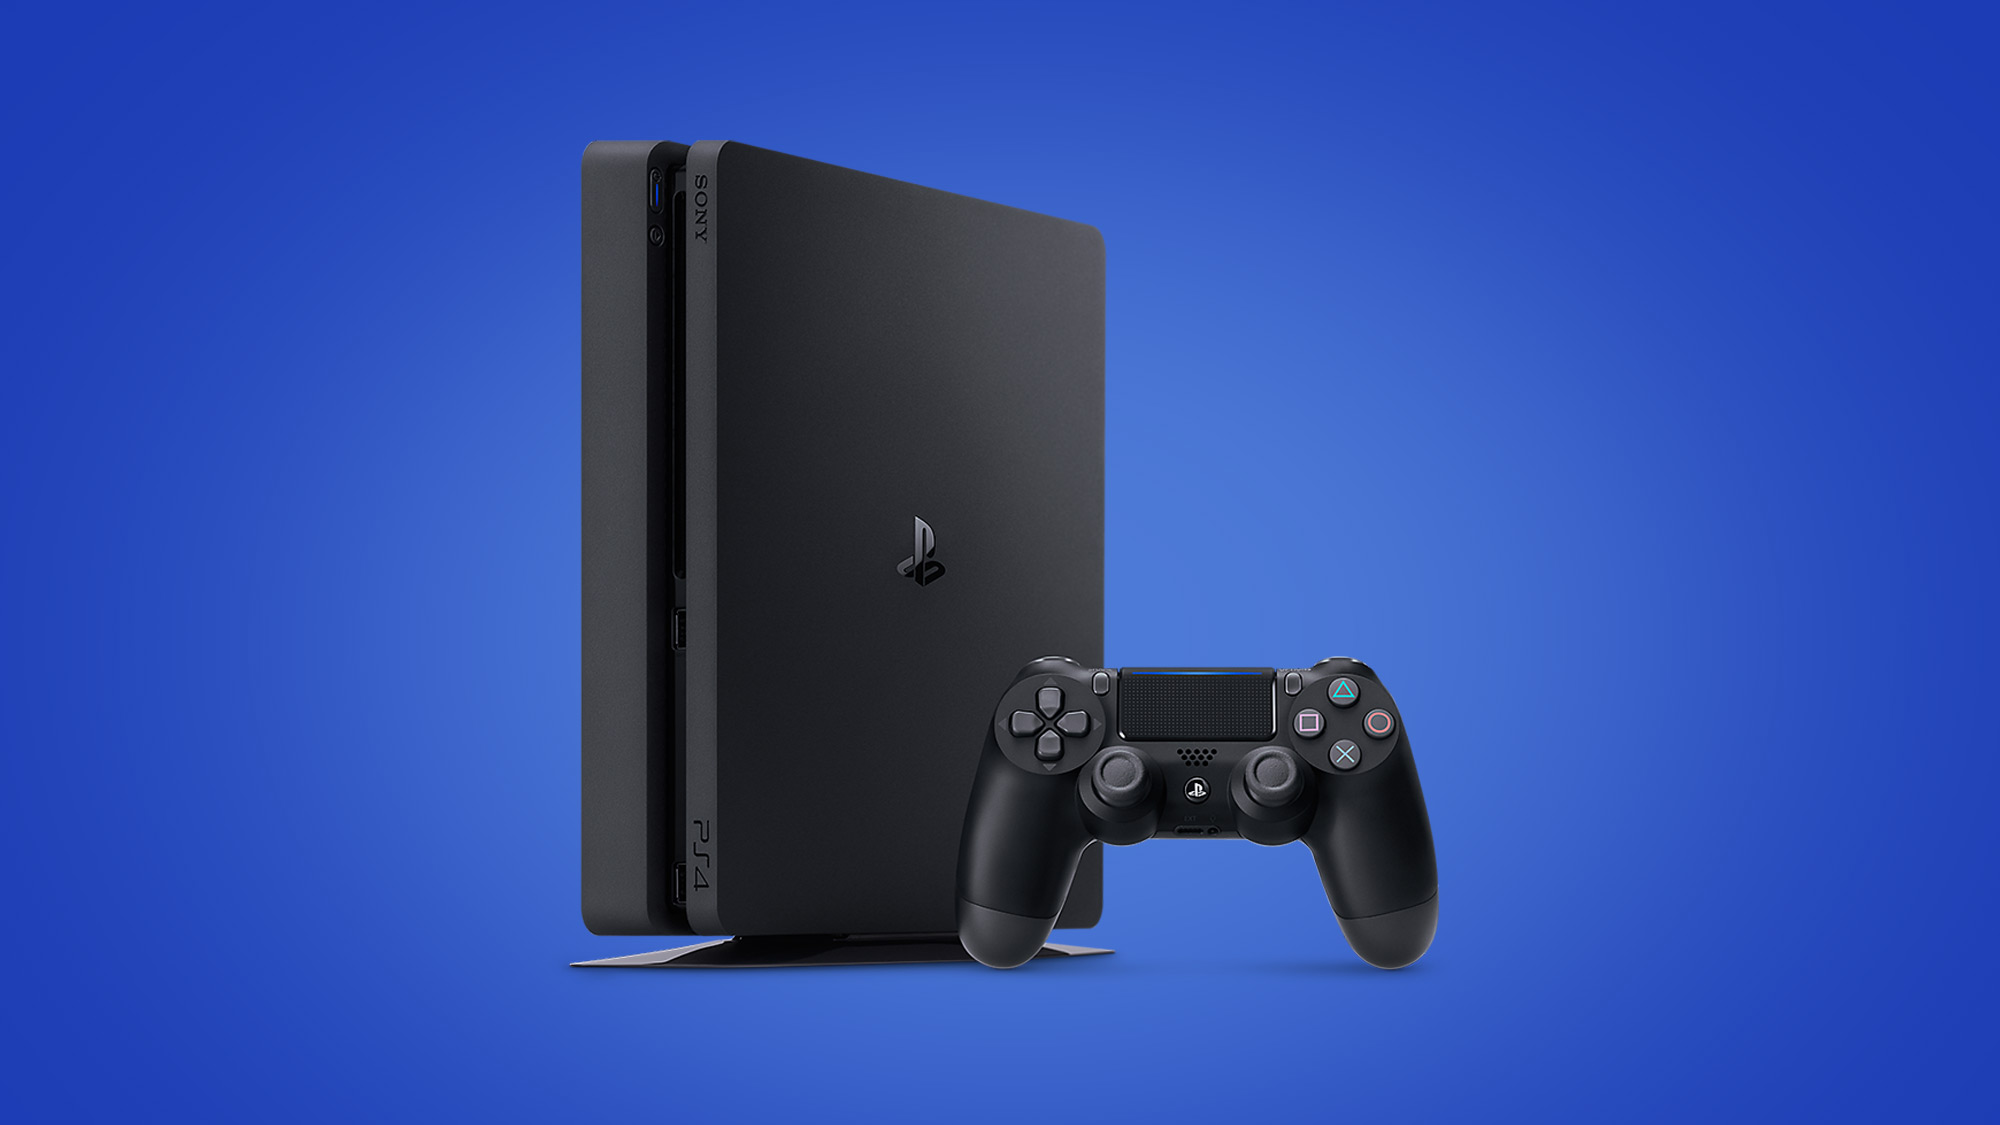 The Best Ps4 Deals Bundles And Prices In November 2020 Techradar